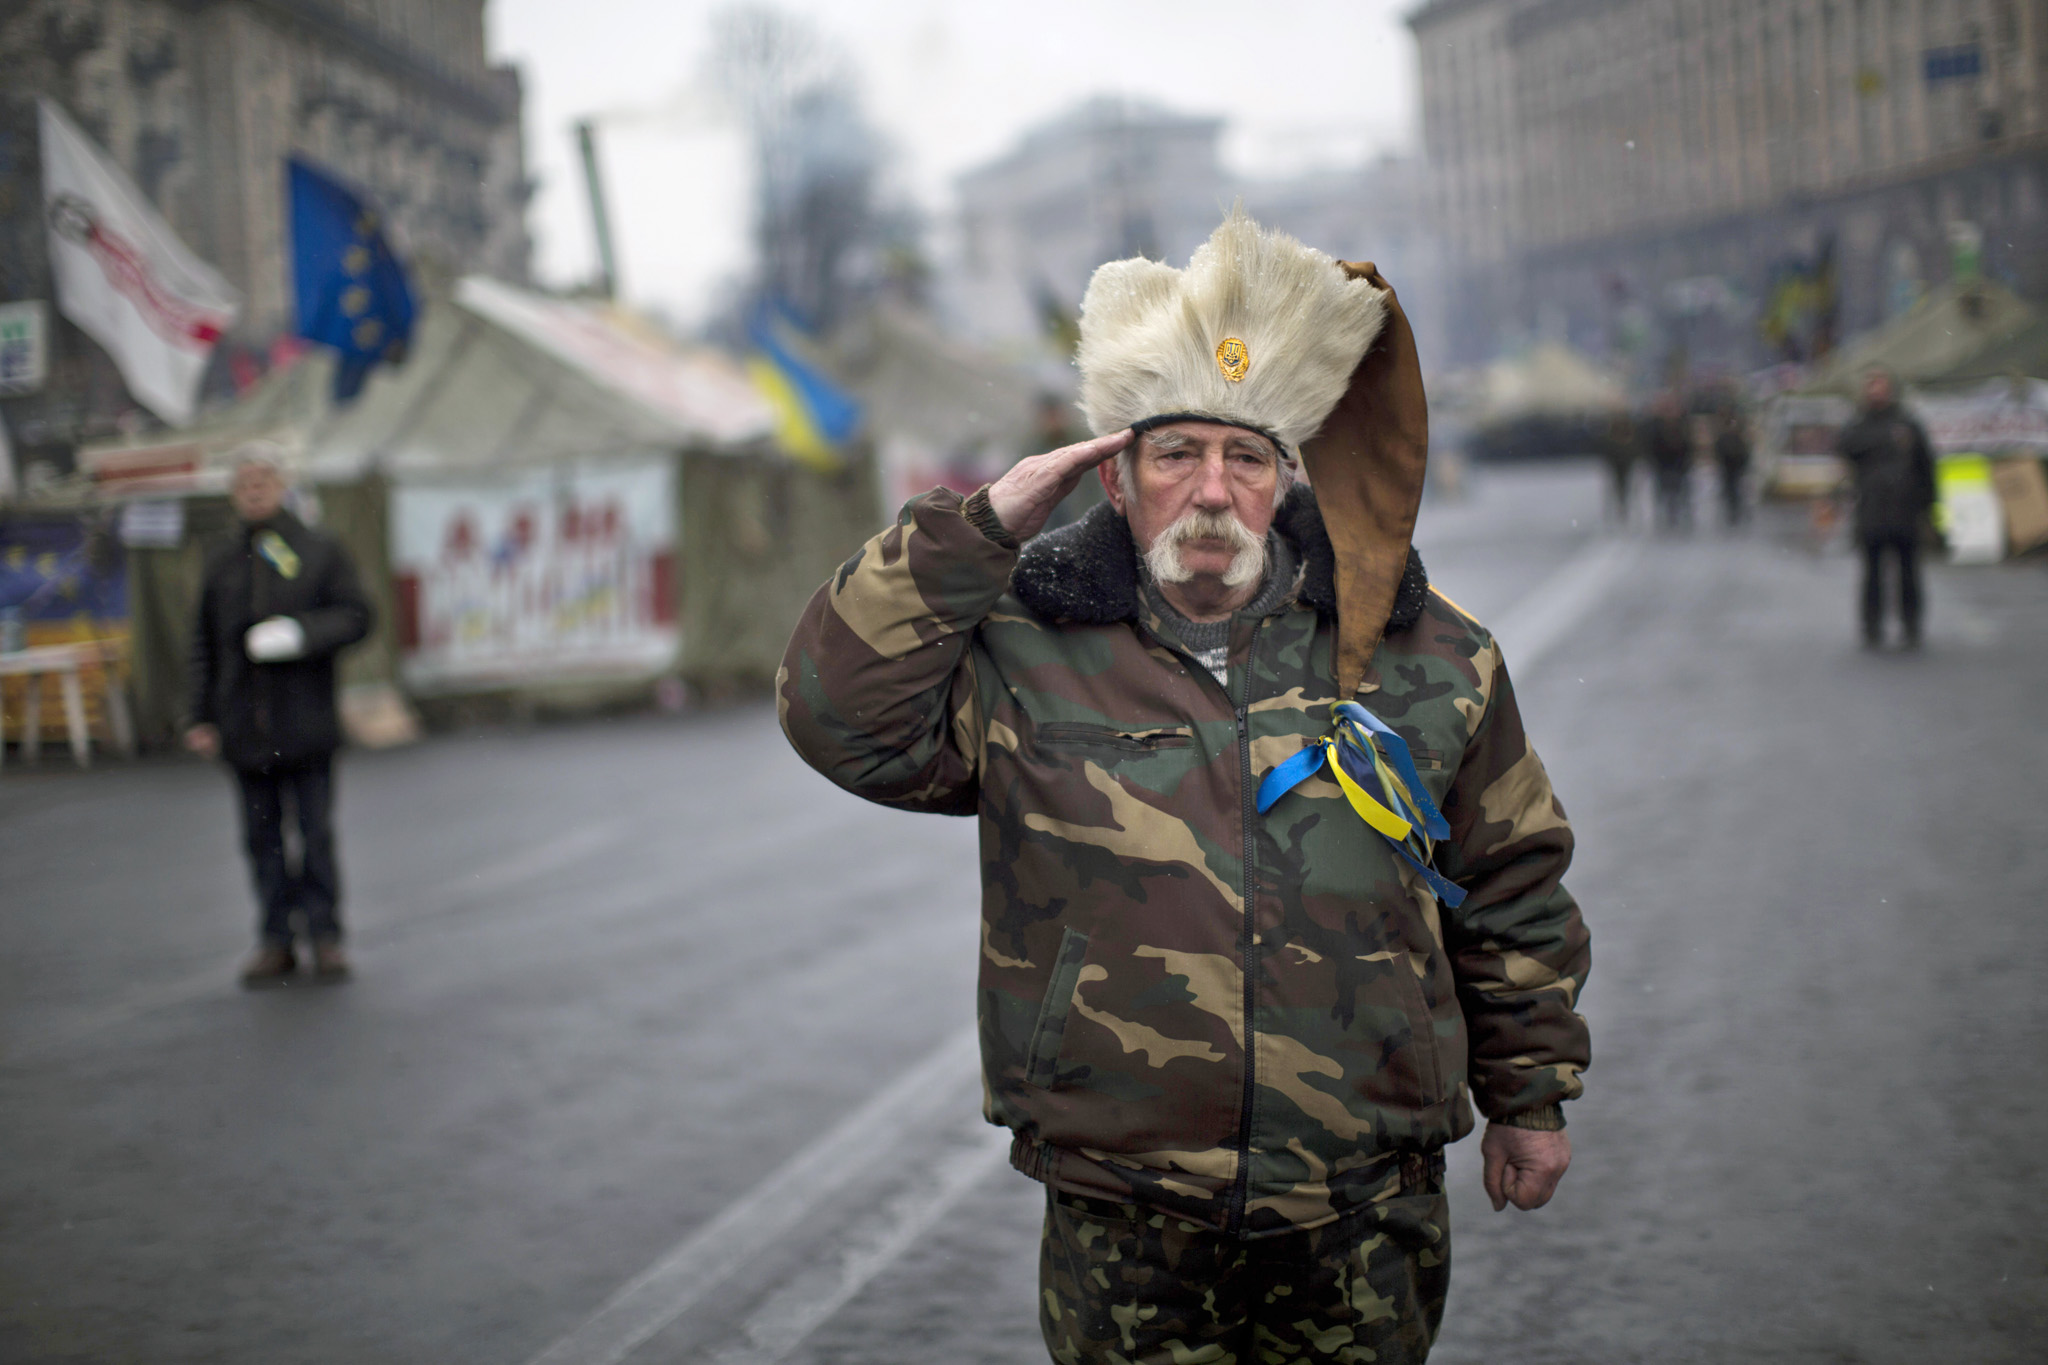 An anti-Yanukovych protester salutes as the Ukrainian national anthem is played at Kiev's Independence Square, Ukraine, Monday, March 3, 2014. The U.S. and its allies are weighing sanctions on Moscow and whether to bolster defenses in Europe in response to Russia's military advances on Ukraine.